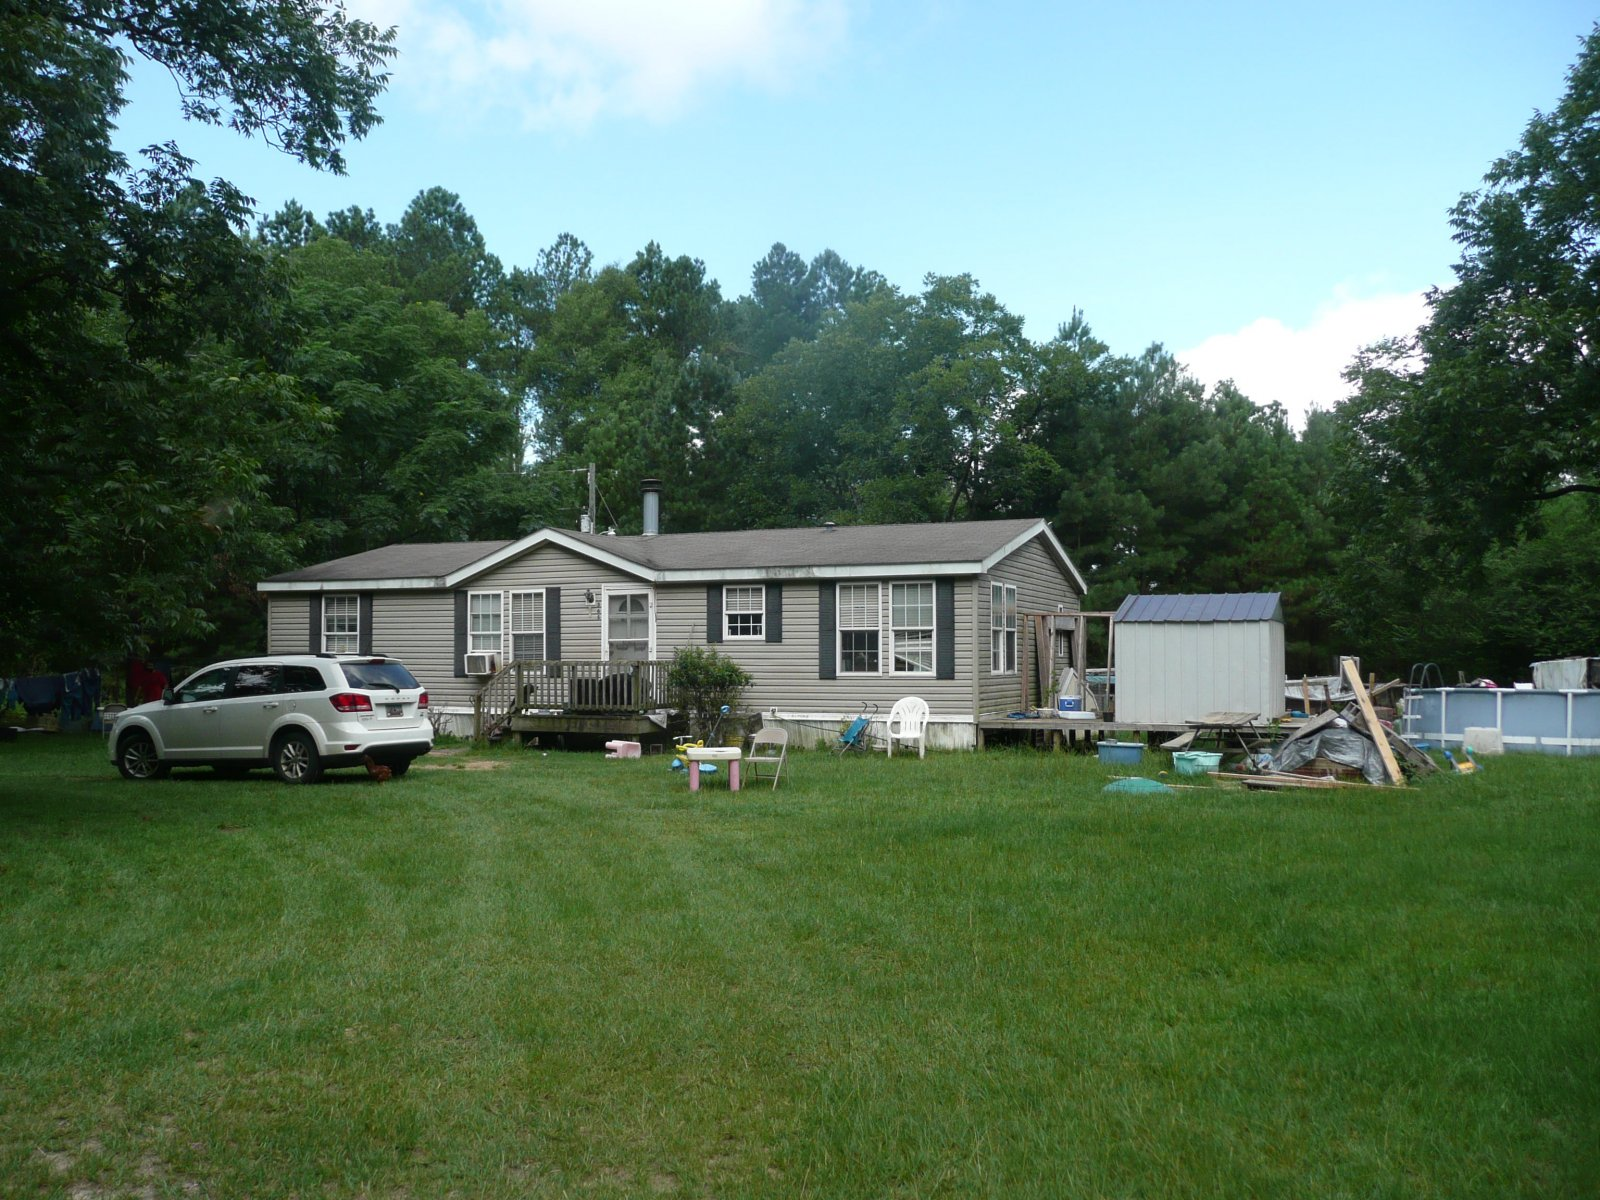 Double wide mobile home for sale in Salley SC on 2.9 acres. Lots of room to expand.